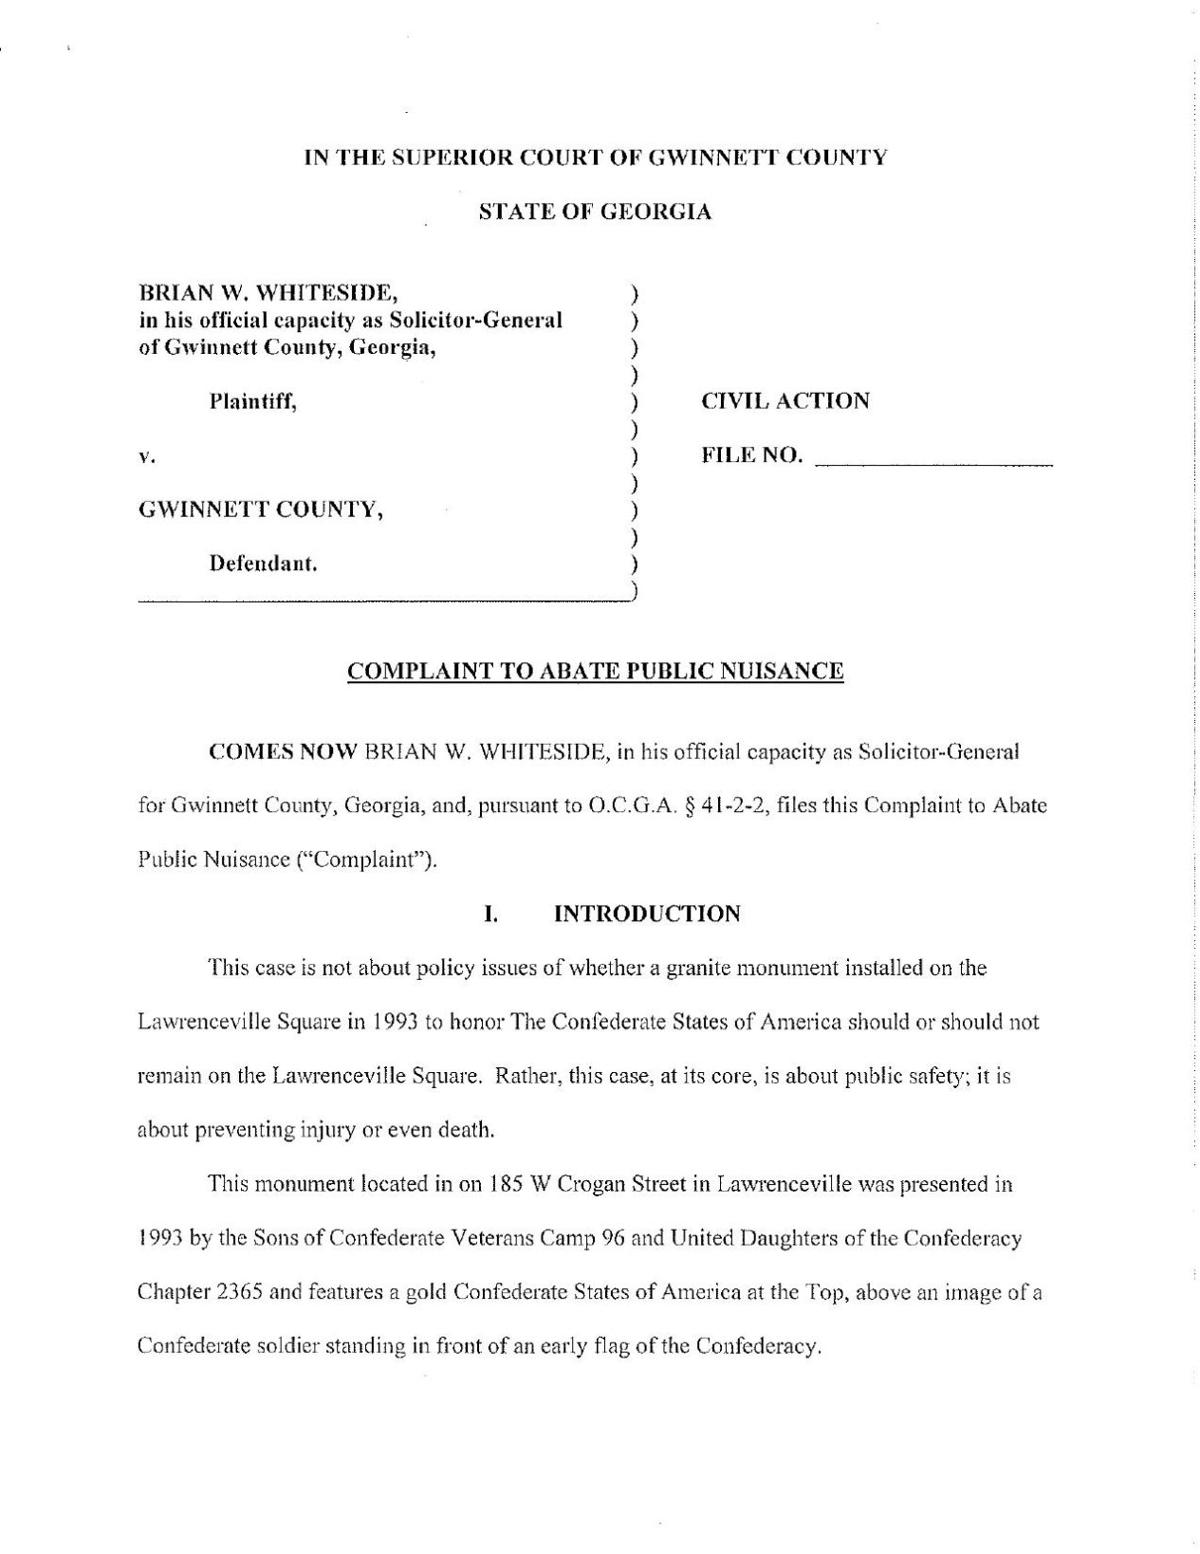 Gwinnett solicitor General Brian Whiteside's complaint asking for Confederate monument's removal